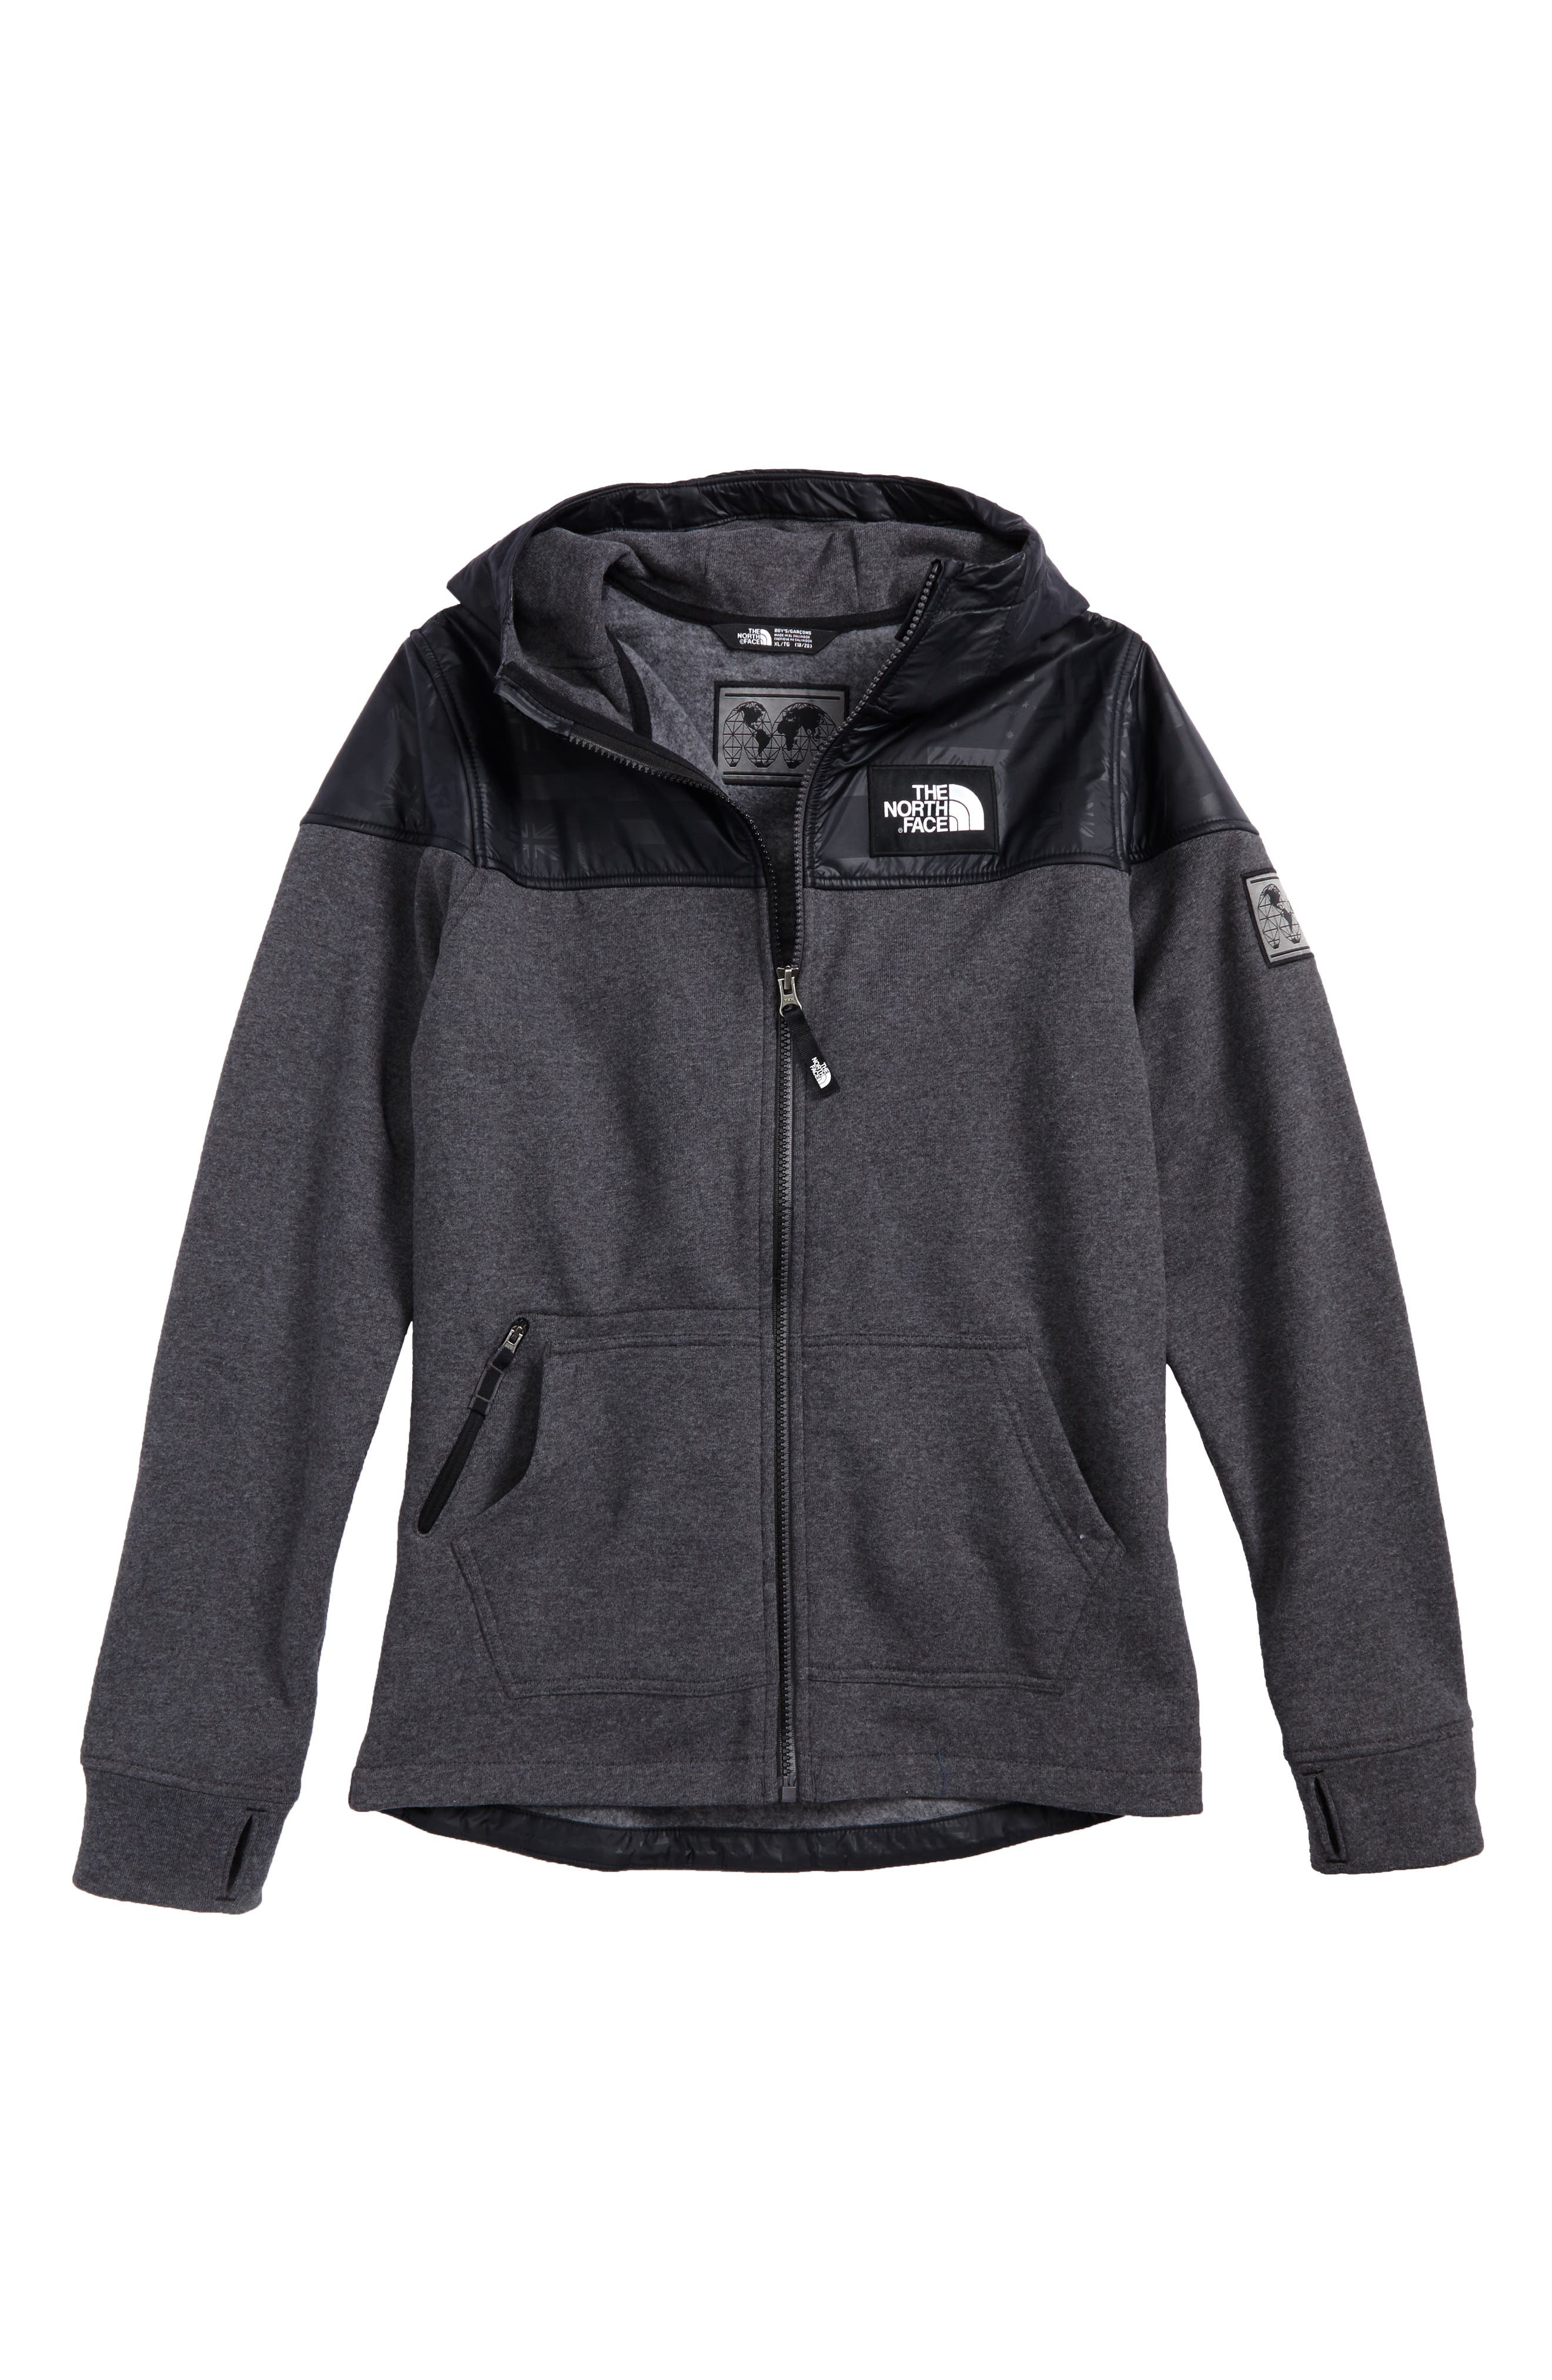 Main Image - The North Face International Collection Zip Hoodie (Little Boys & Big Boys)